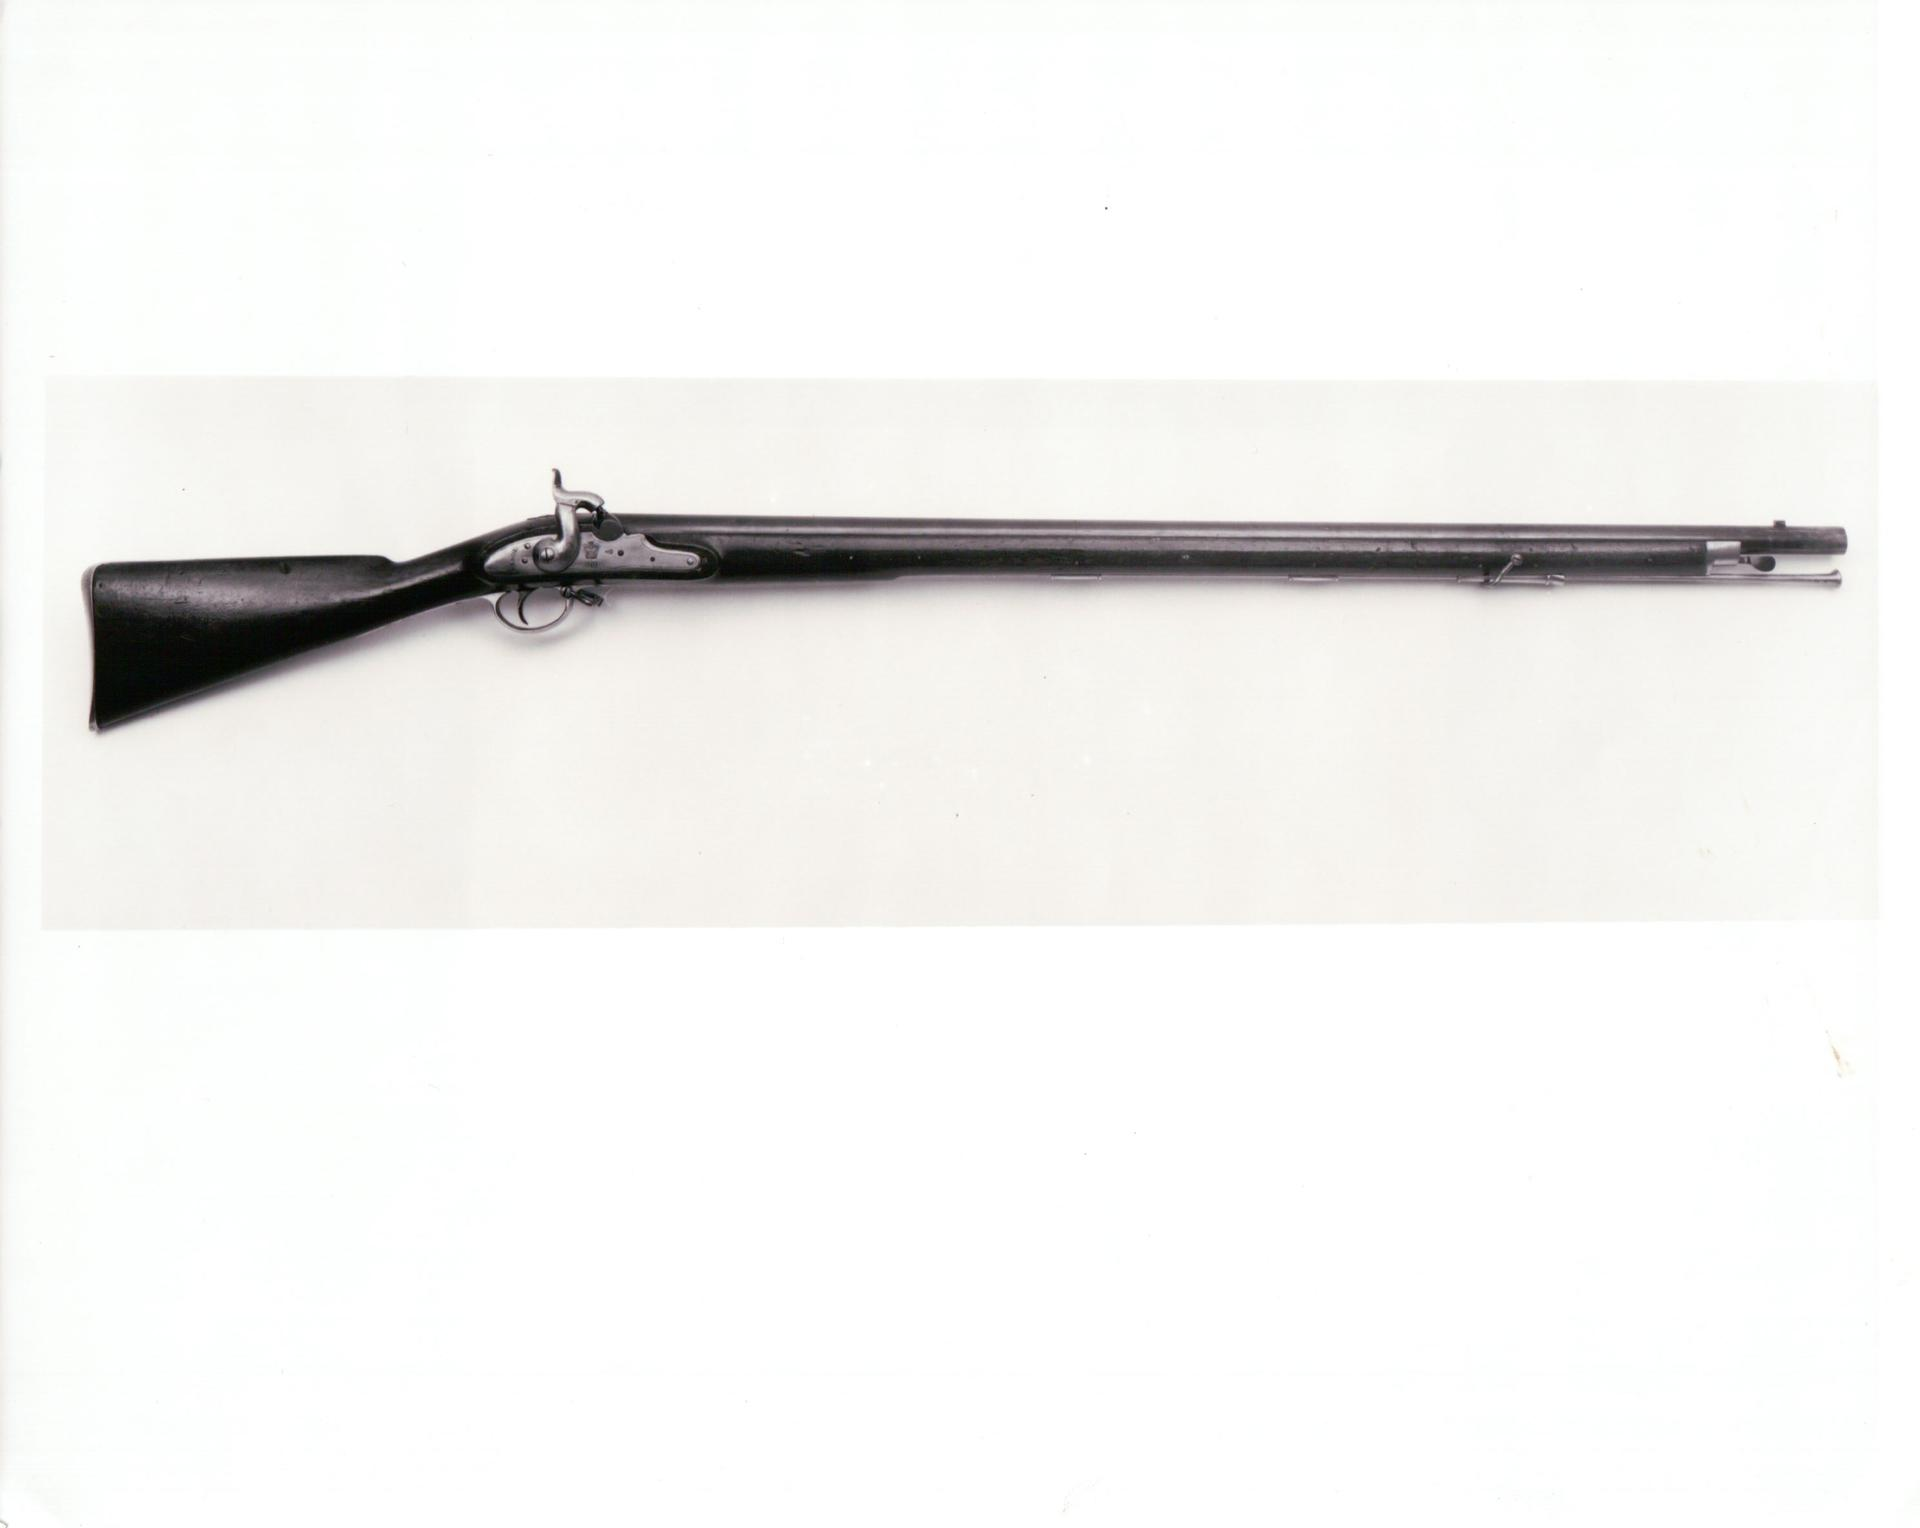 Percussion muzzle-loading military musket